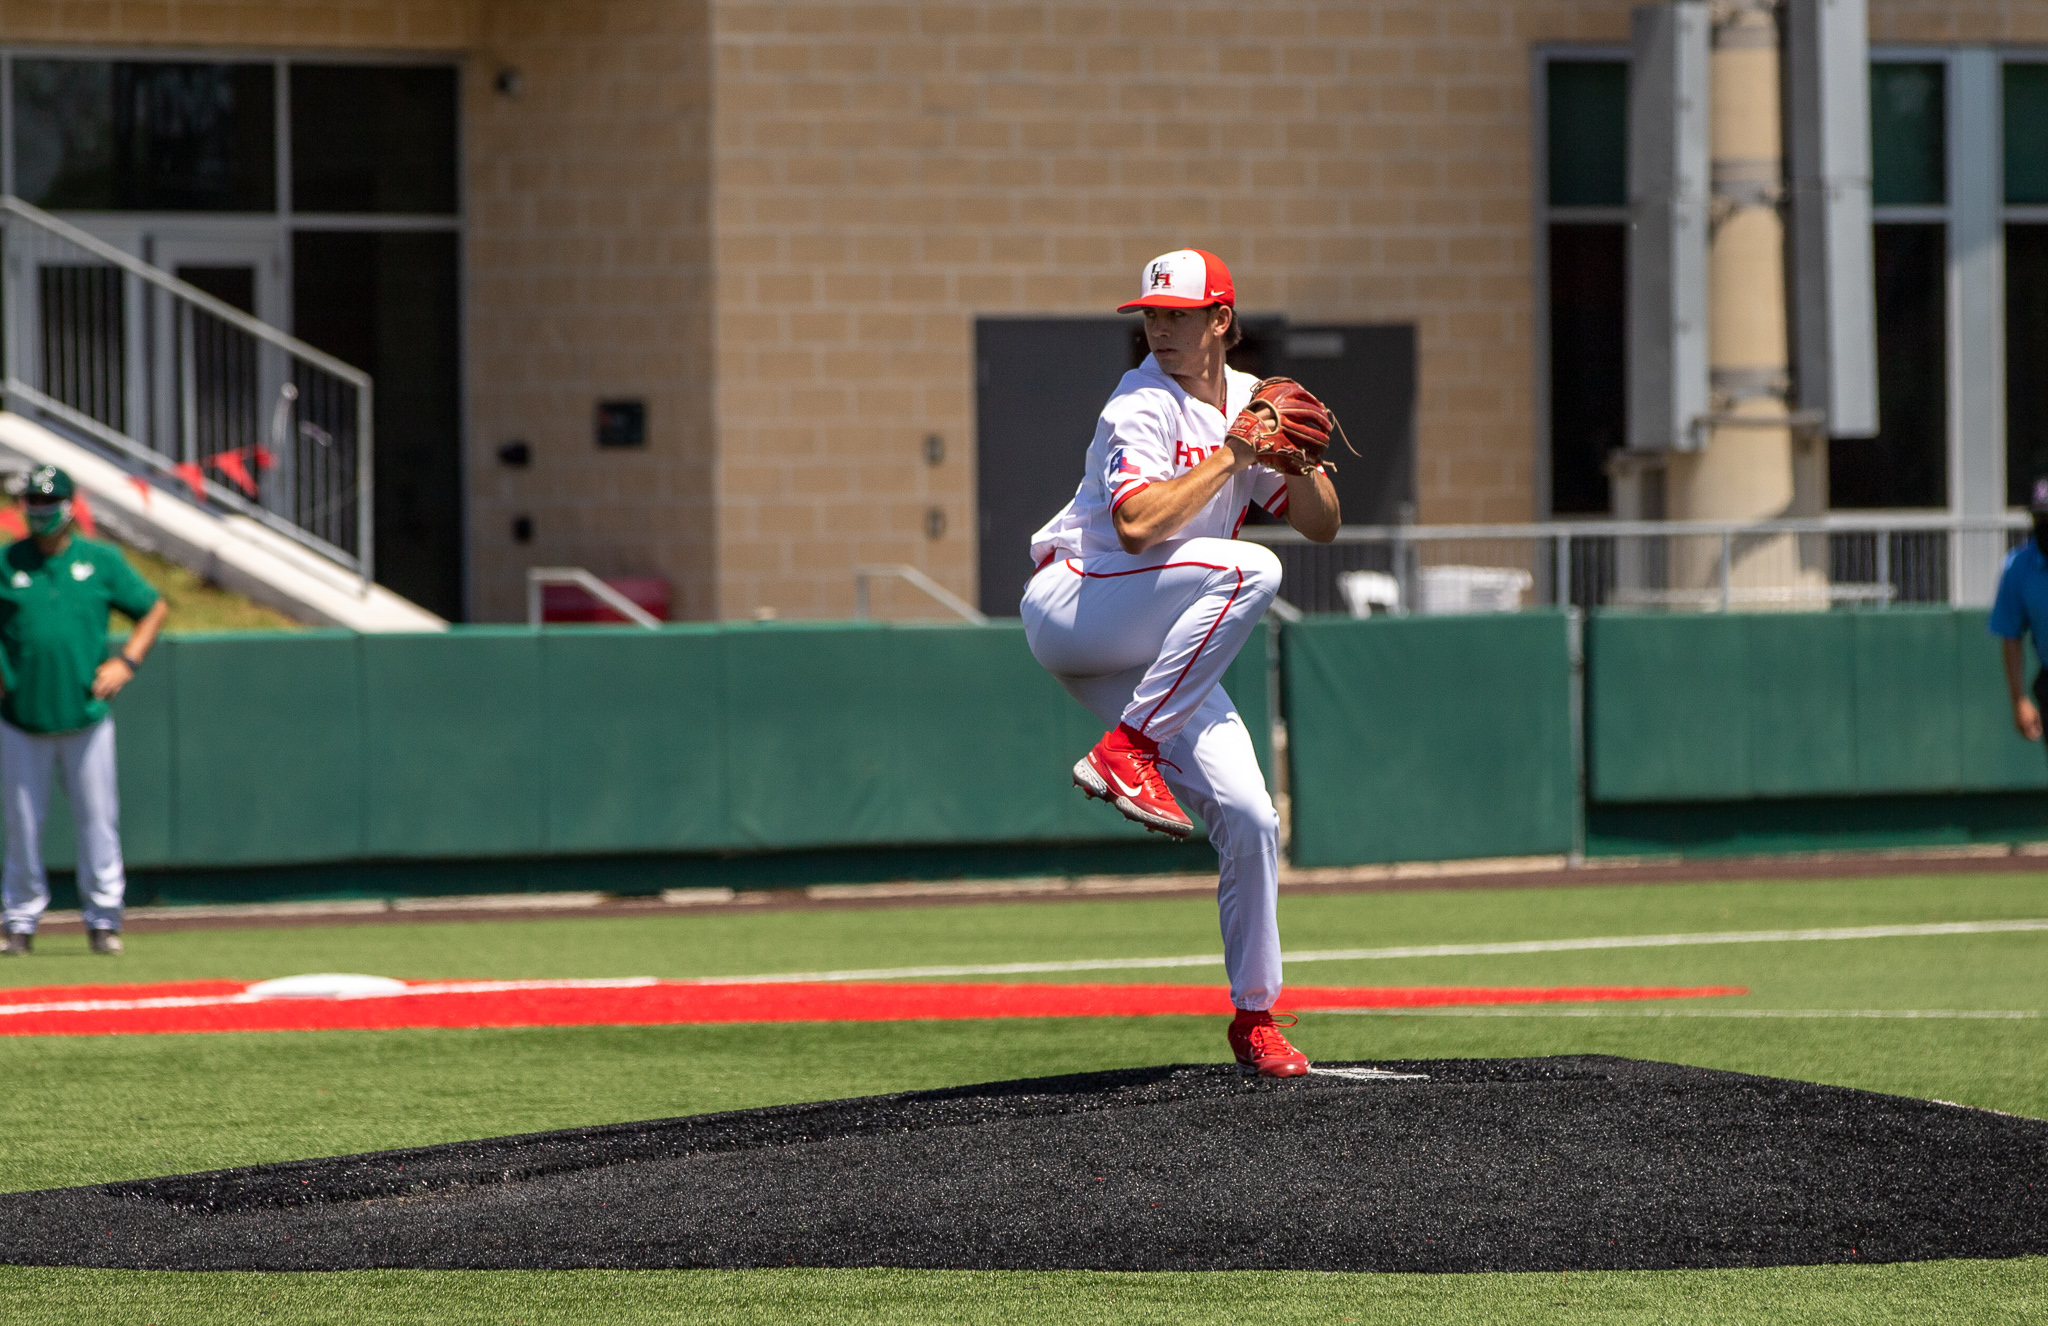 Junior left-hander Robert Gasser earned his sixth win of the year, throwing seven innings allowing no earned runs and striking out 10 to power UH baseball to victory in its series opener against Memphis. | Andy Yanez/The Cougar